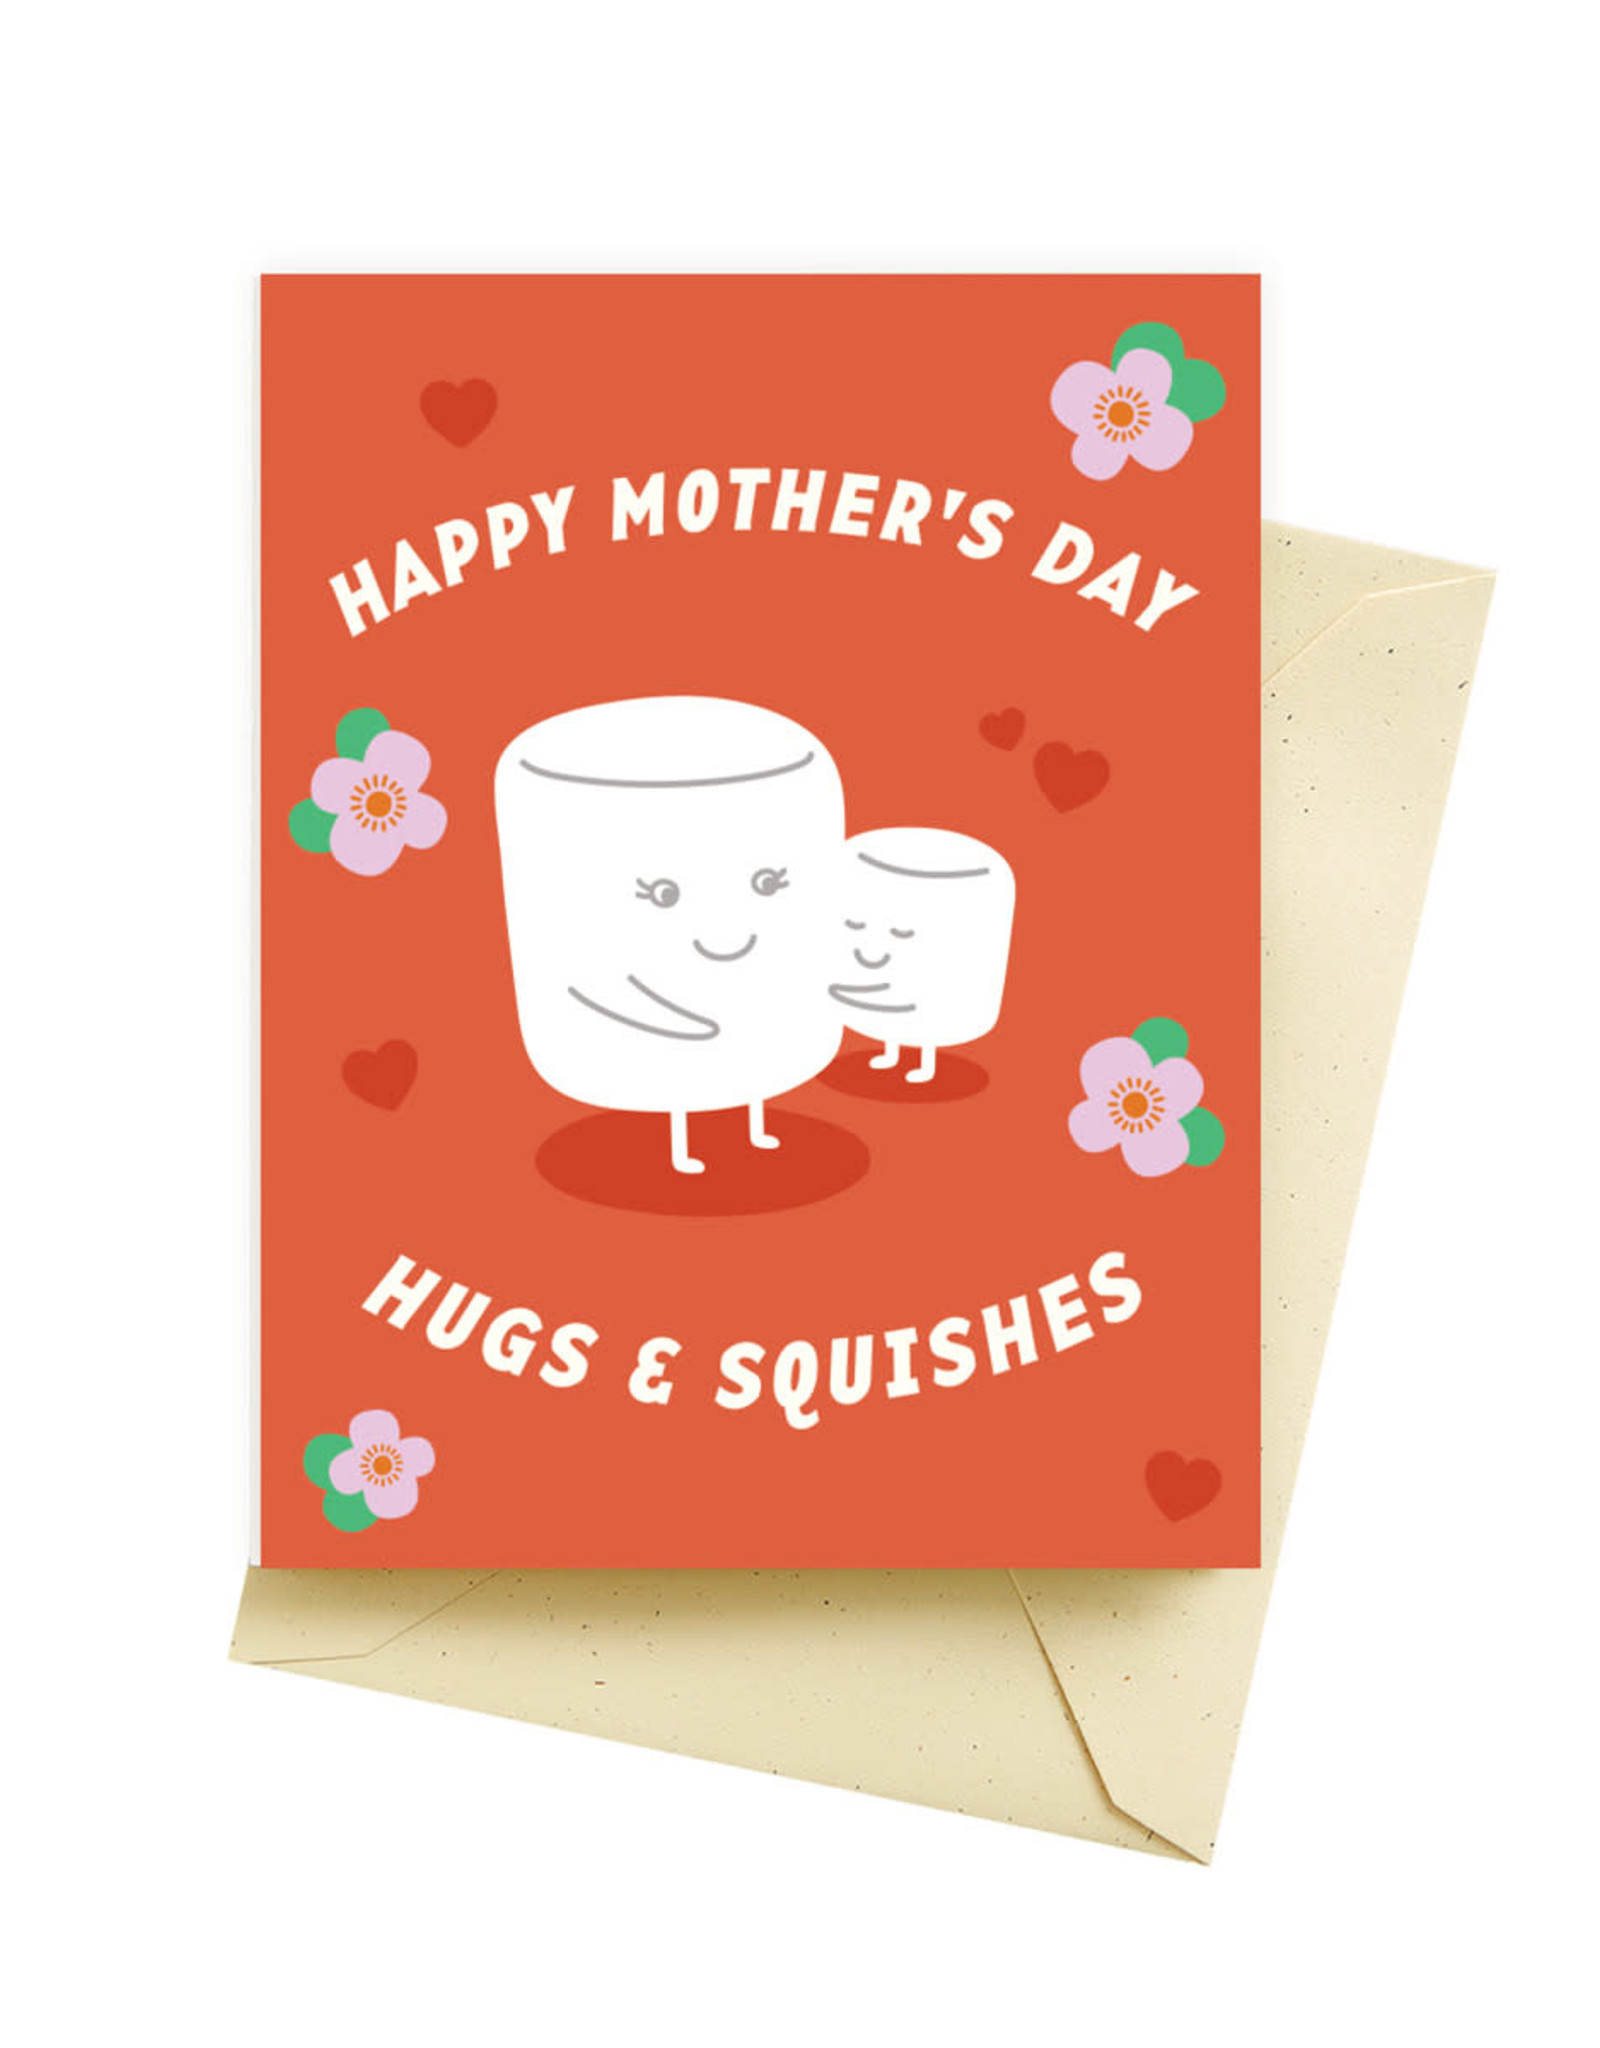 Seltzer Hugs Squishes Mothers Day Greeting Card - Seltzer